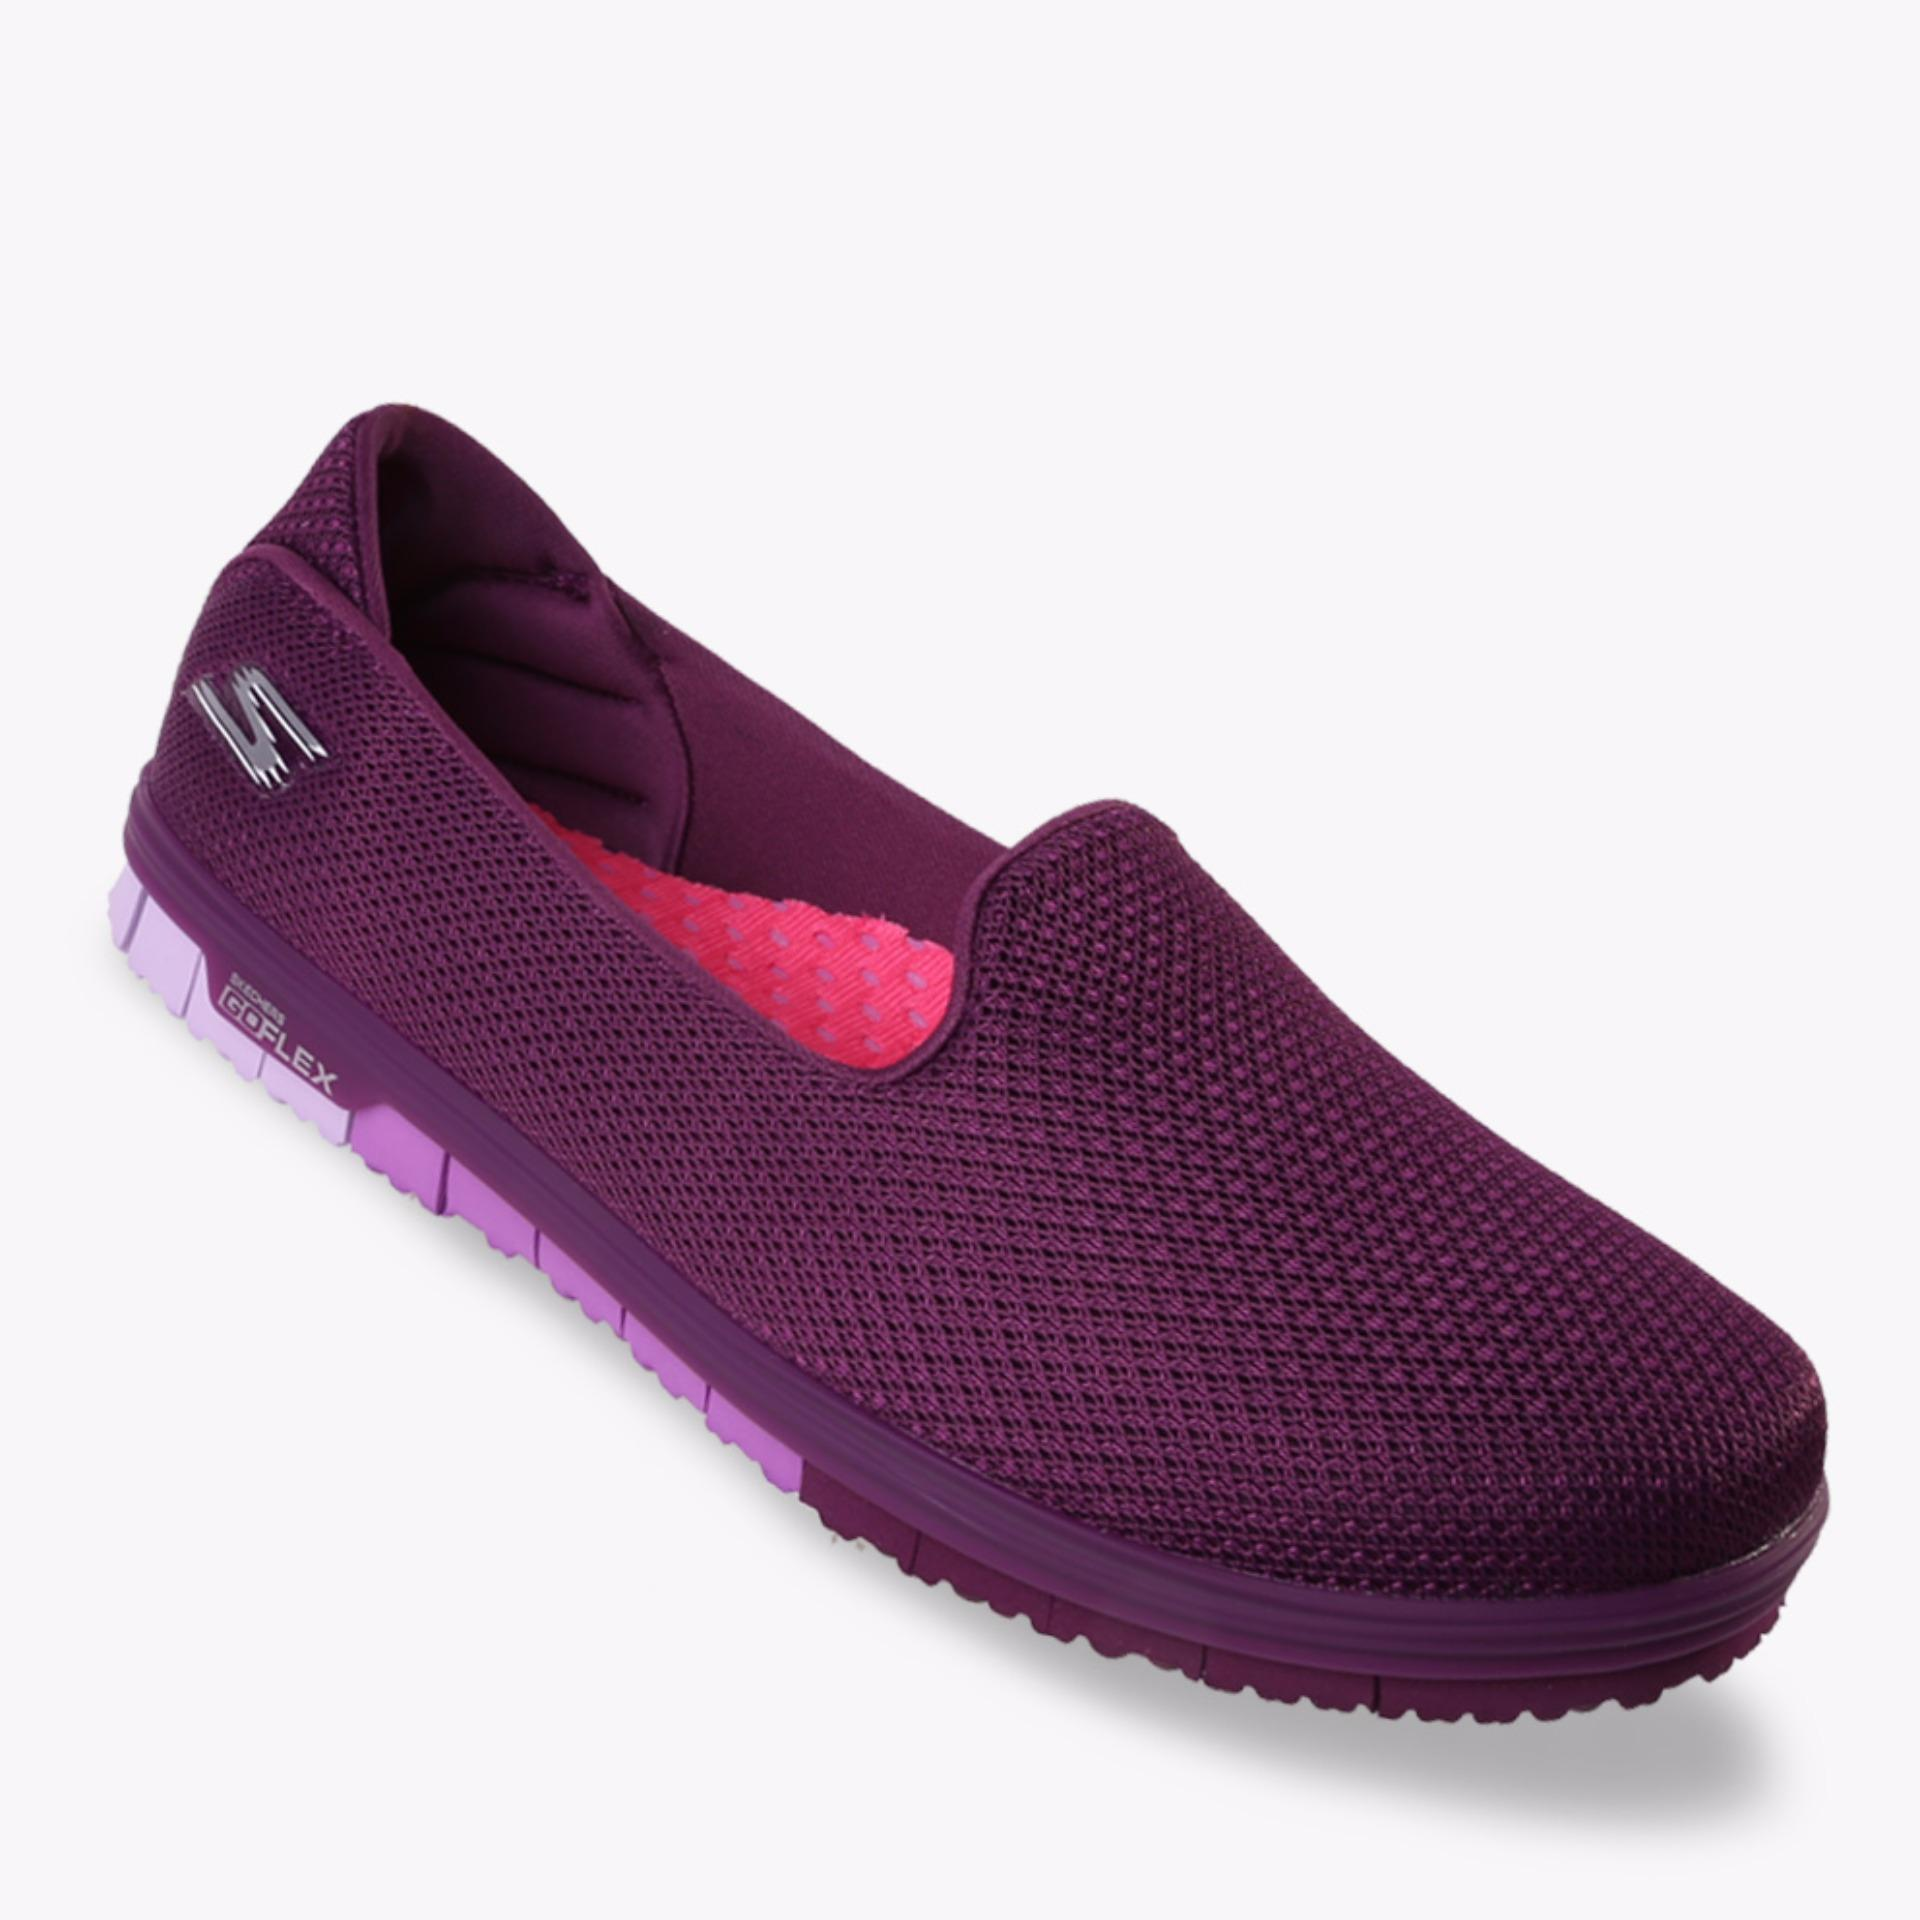 Review Toko Skechers Go Mini Flex Walk Women S Slip On Ungu Online